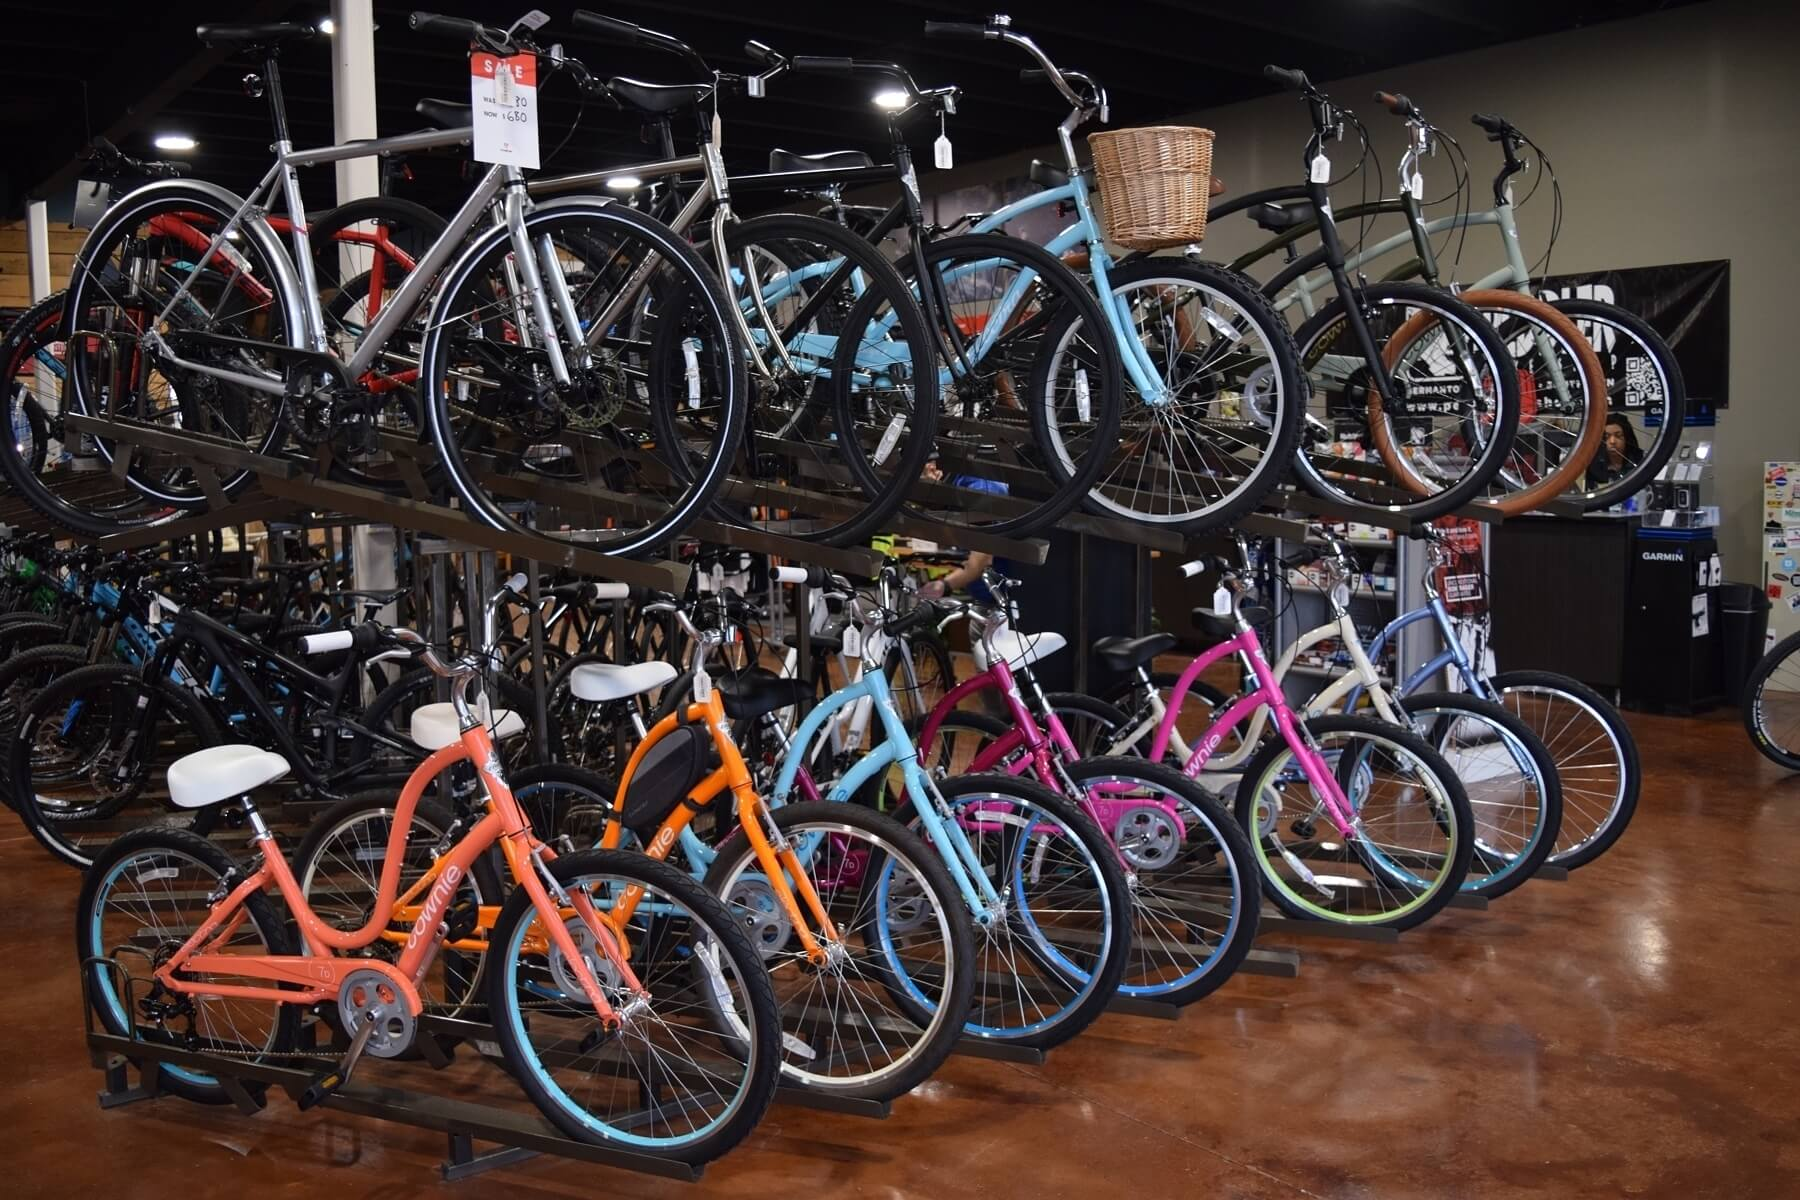 Peddler Bike Shop has a bike for everyone. The bike selection includes hybrids, mountain, and road bikes as well as options for kids of all ages.